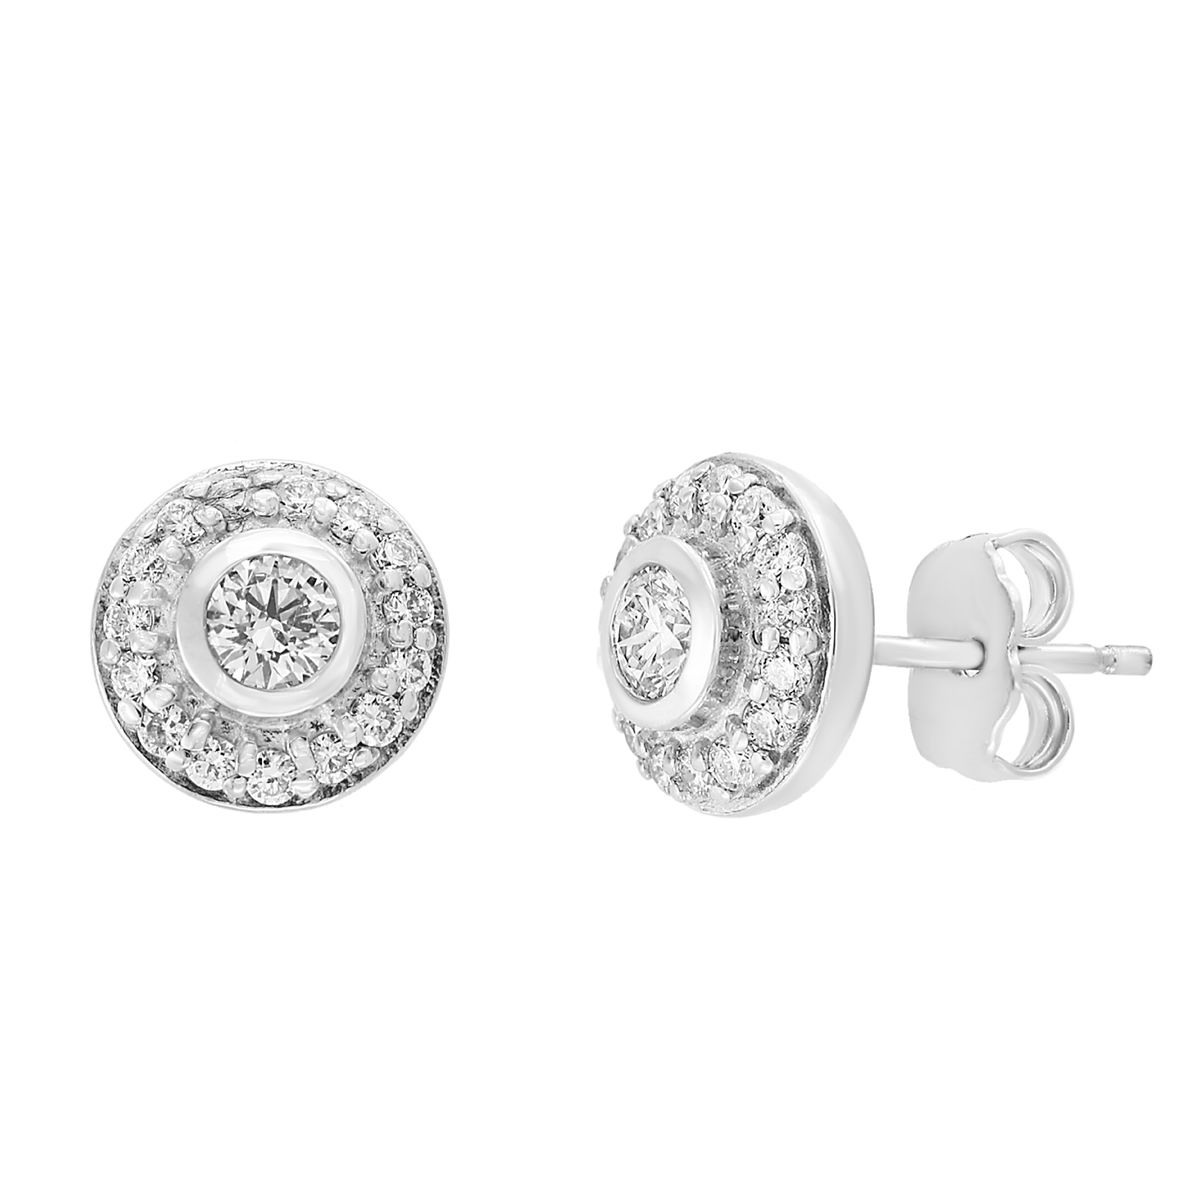 680ec2912c3c72 EFFY Collection Earrings - Macy's